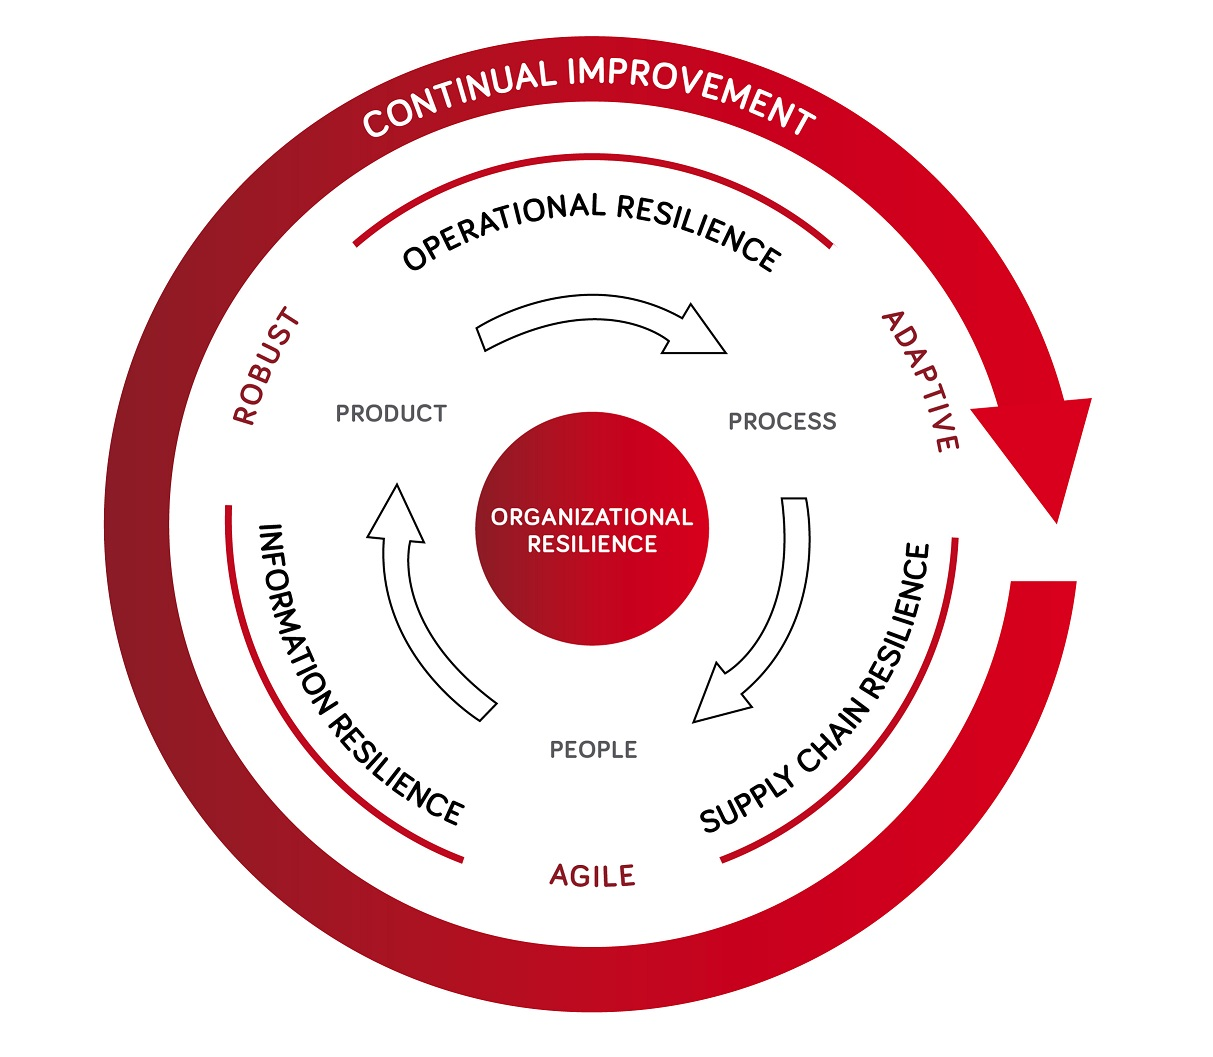 organizational resilience elements graphic